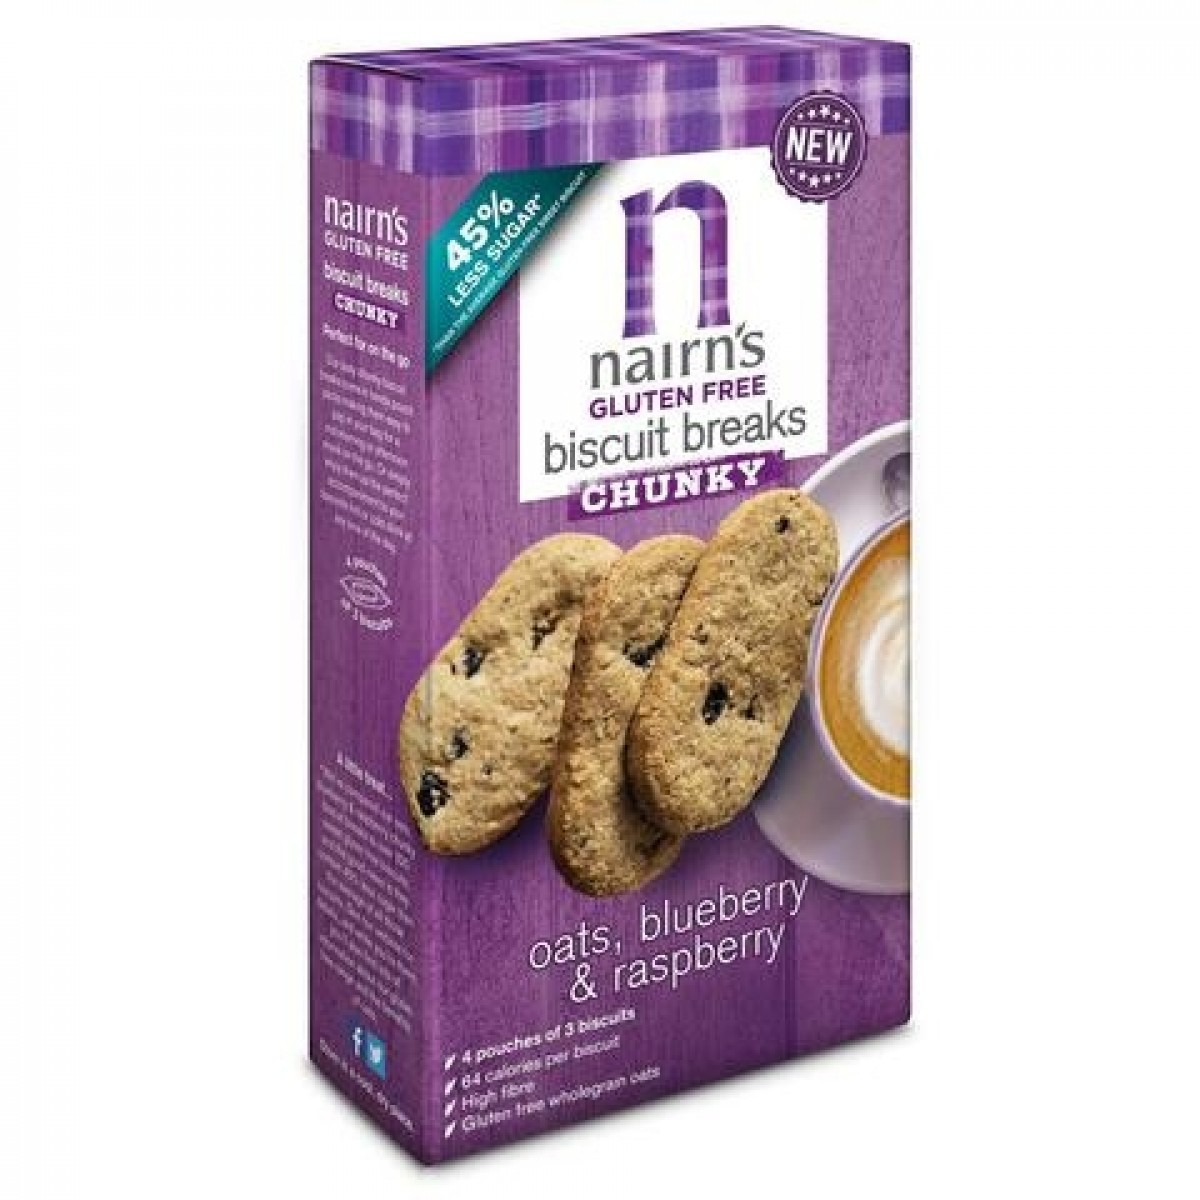 Biscuits Breaks Chunky Oats, Blueberry & Raspberry